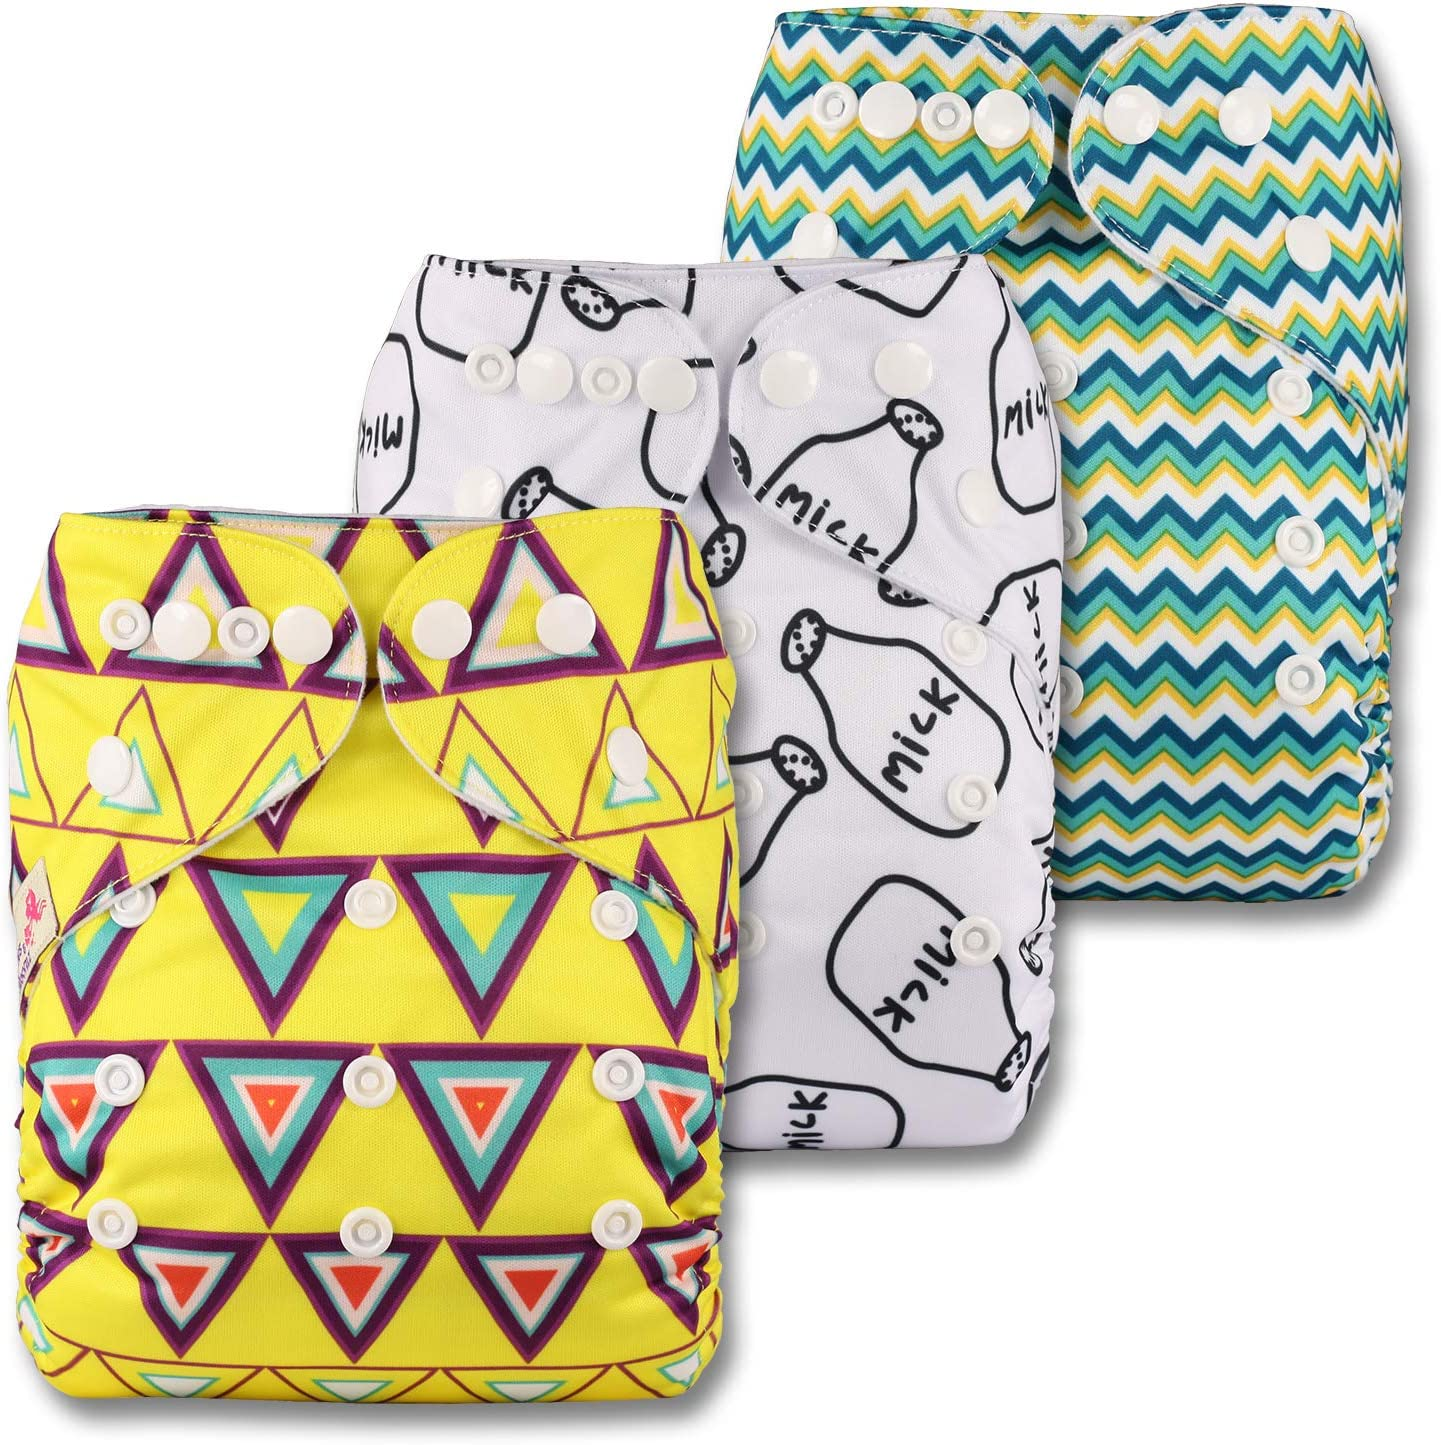 Fastener: Popper with 3 Bamboo Charcoal Inserts Patterns 329 Reusable Pocket Cloth Nappy Set of 3 Littles /& Bloomz